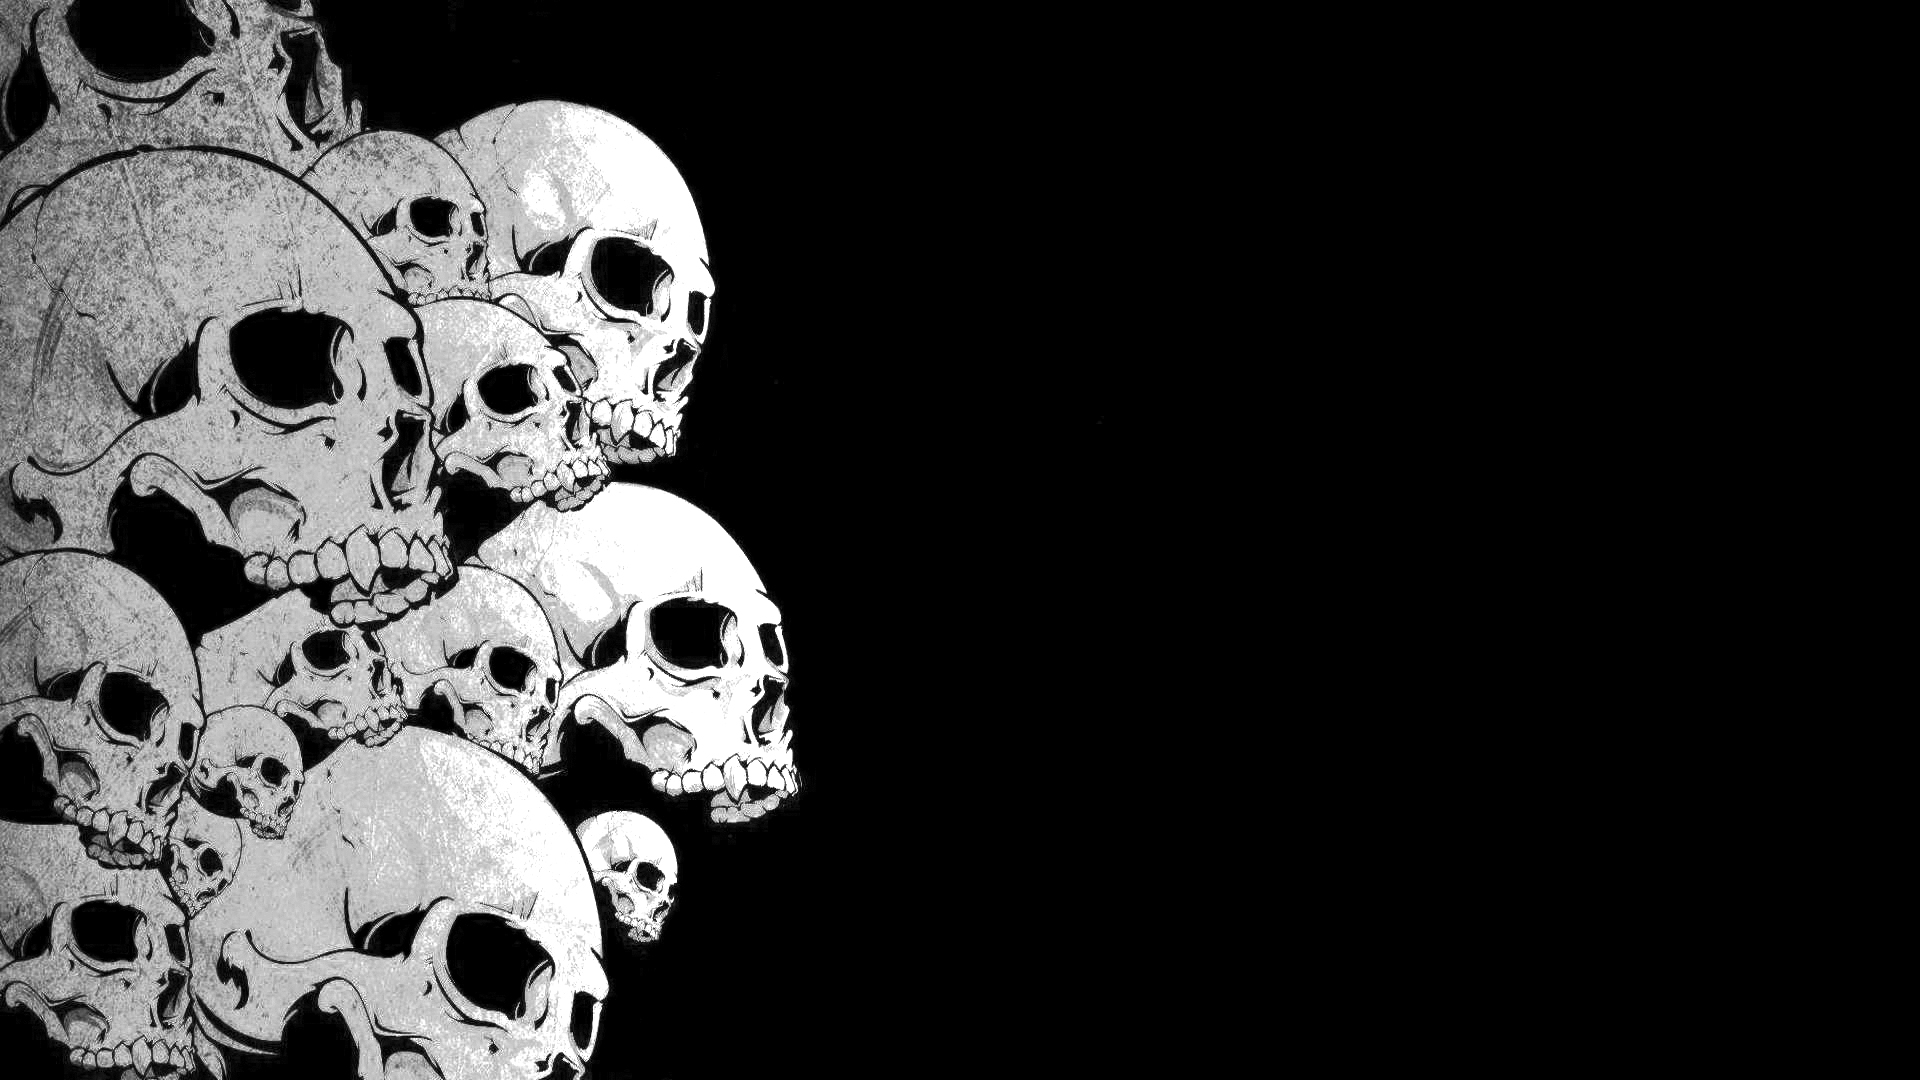 skull, background, texture, photo, skulls texture background